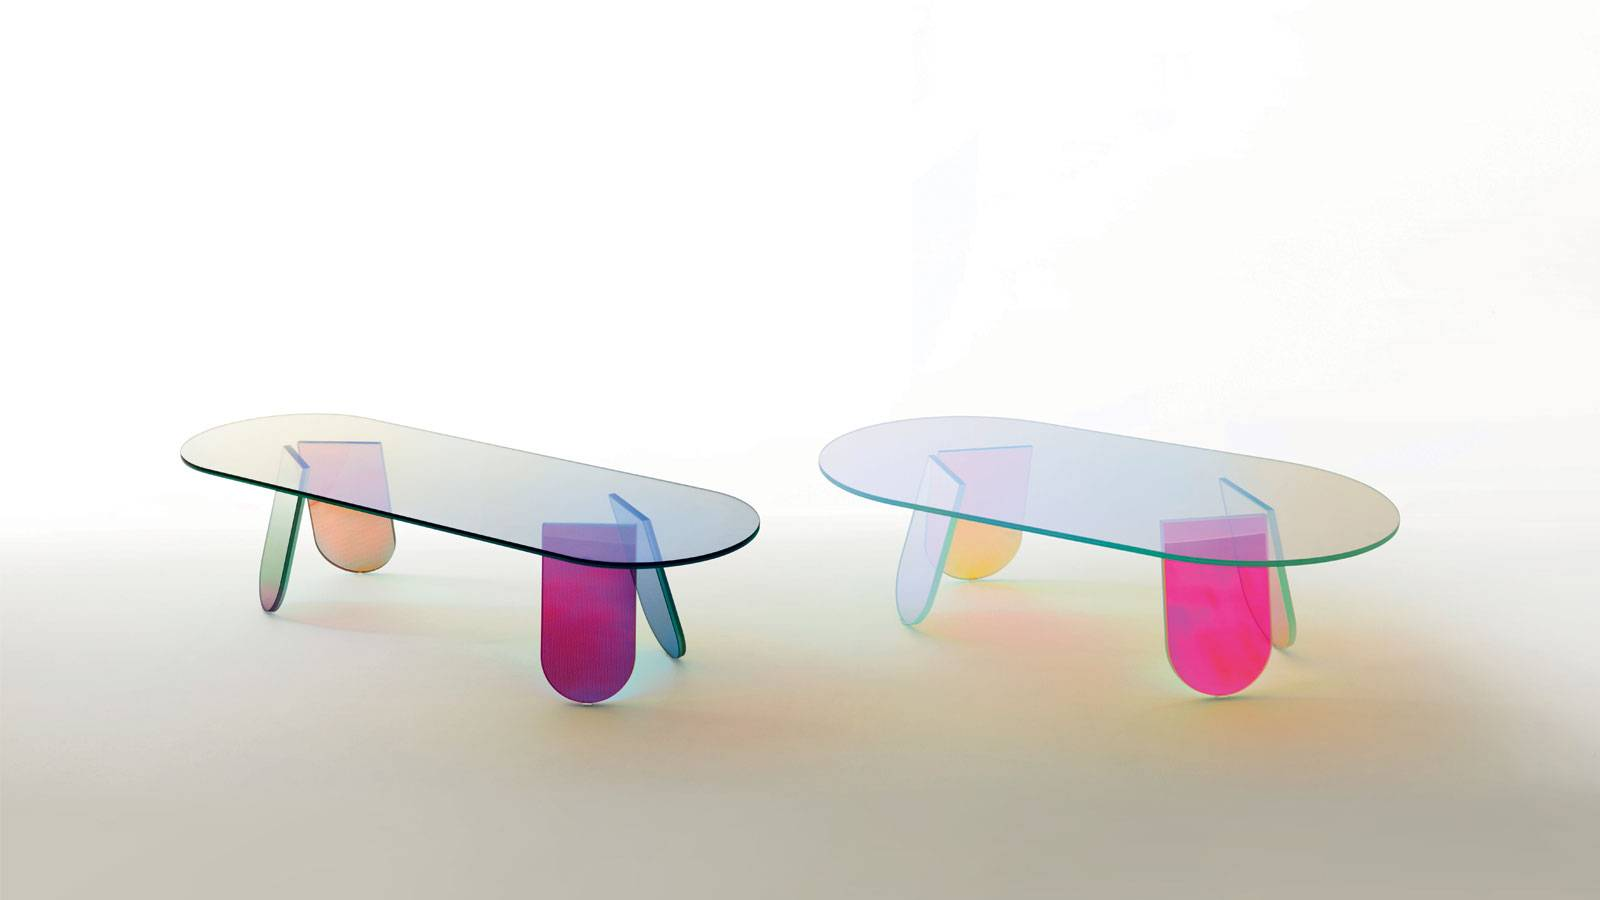 contemporary design furniture by Patricia Urquiola for Glas Italia